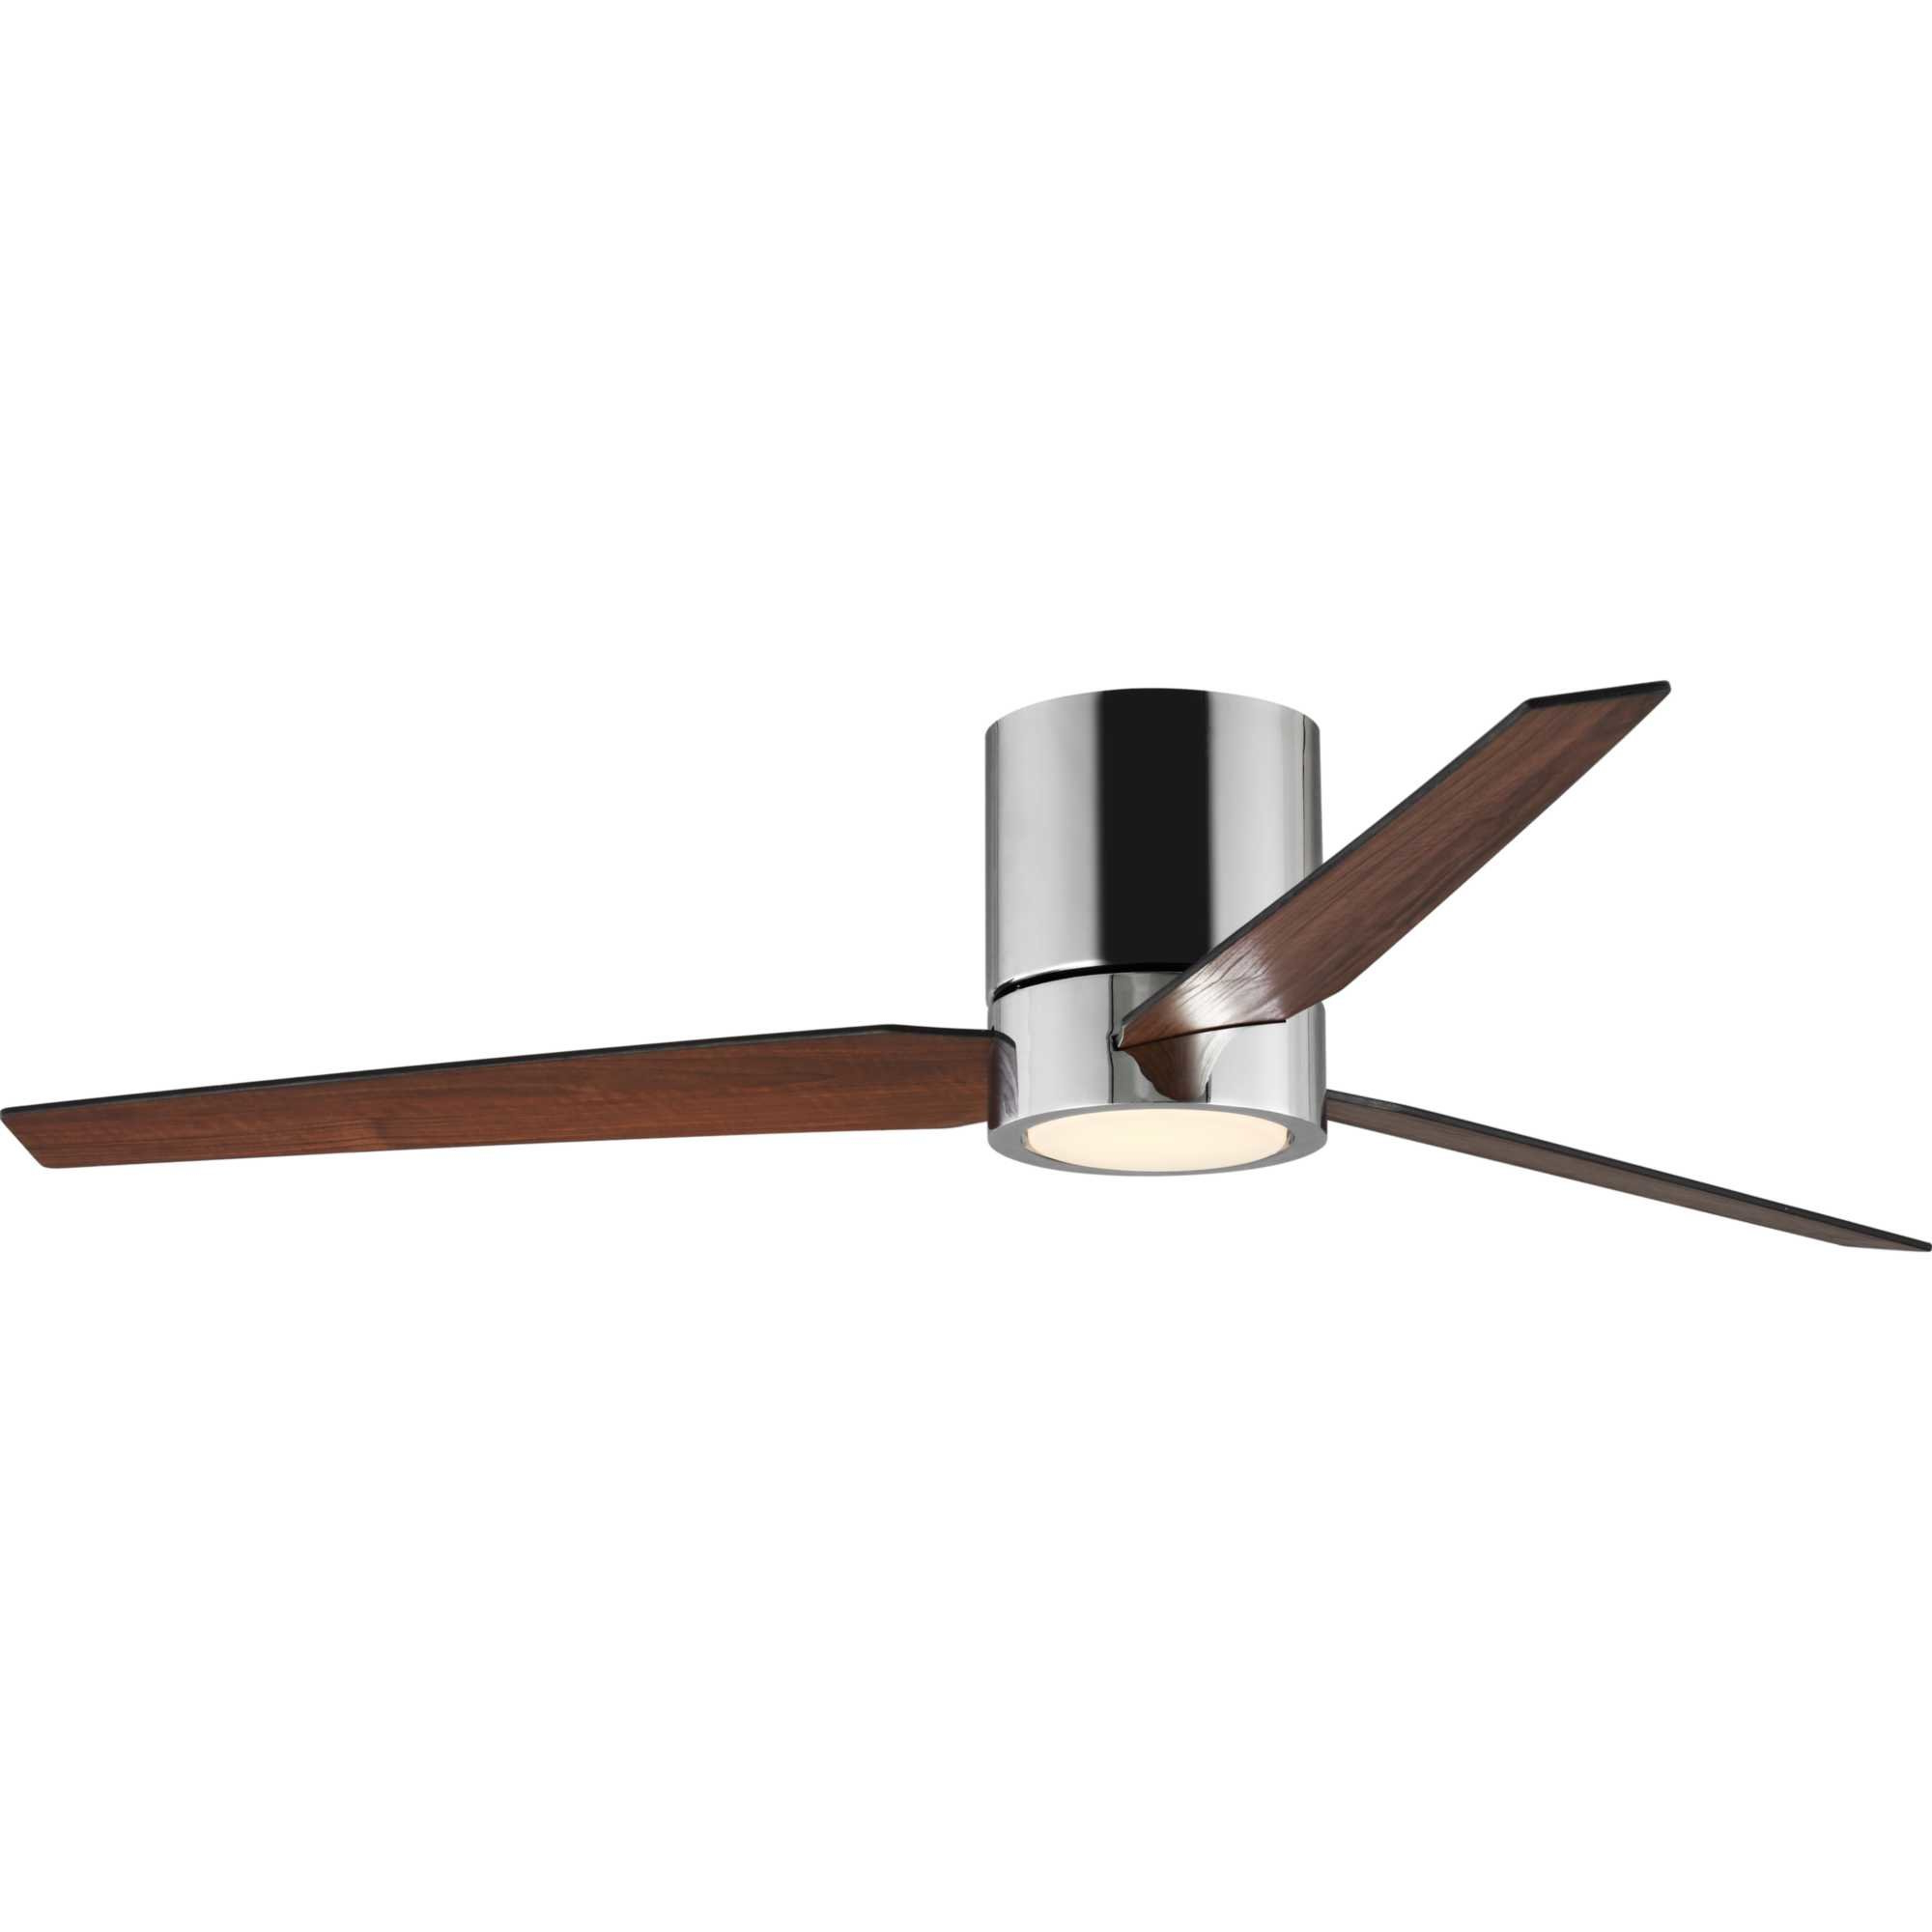 "56"" Tucker Hugger 3 Blade Led Ceiling Fan With Remote, Light Kit Included With Popular Troxler 3 Blade Ceiling Fans (Gallery 10 of 20)"